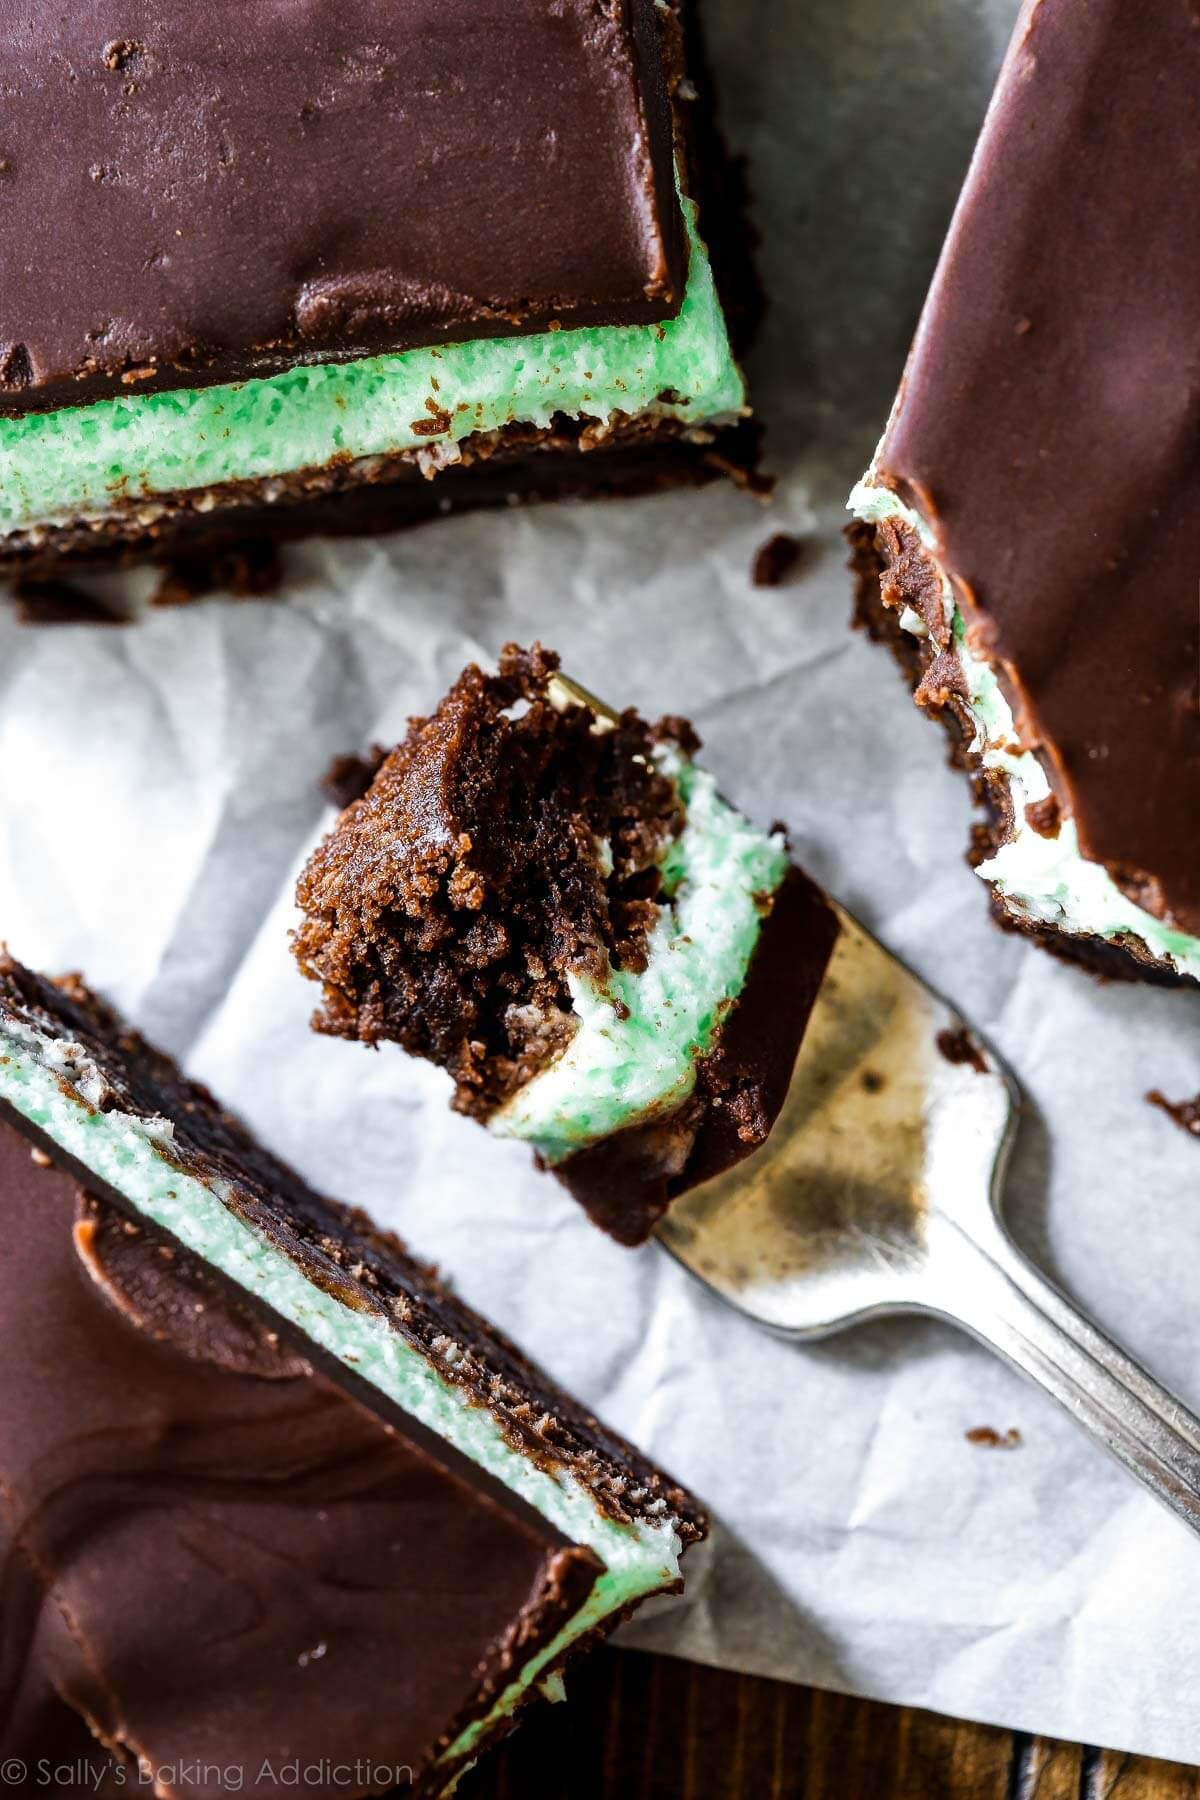 Thick and fudgy brownies layered with sweet mint frosting and easy chocolate ganache. Classic mint chocolate brownies recipe on sallysbakingaddiction.com